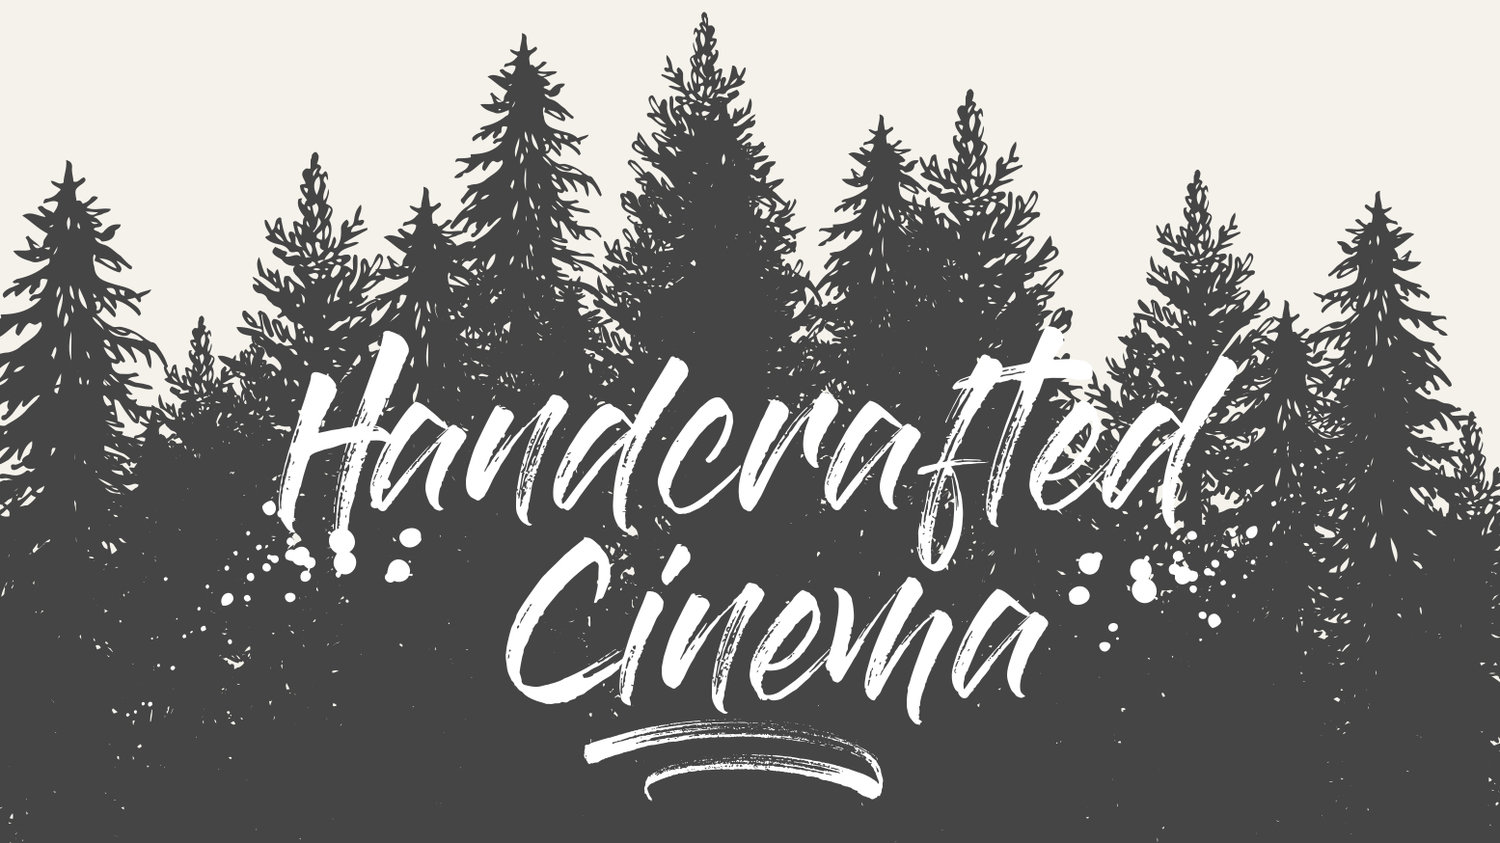 Handcrafted Cinema